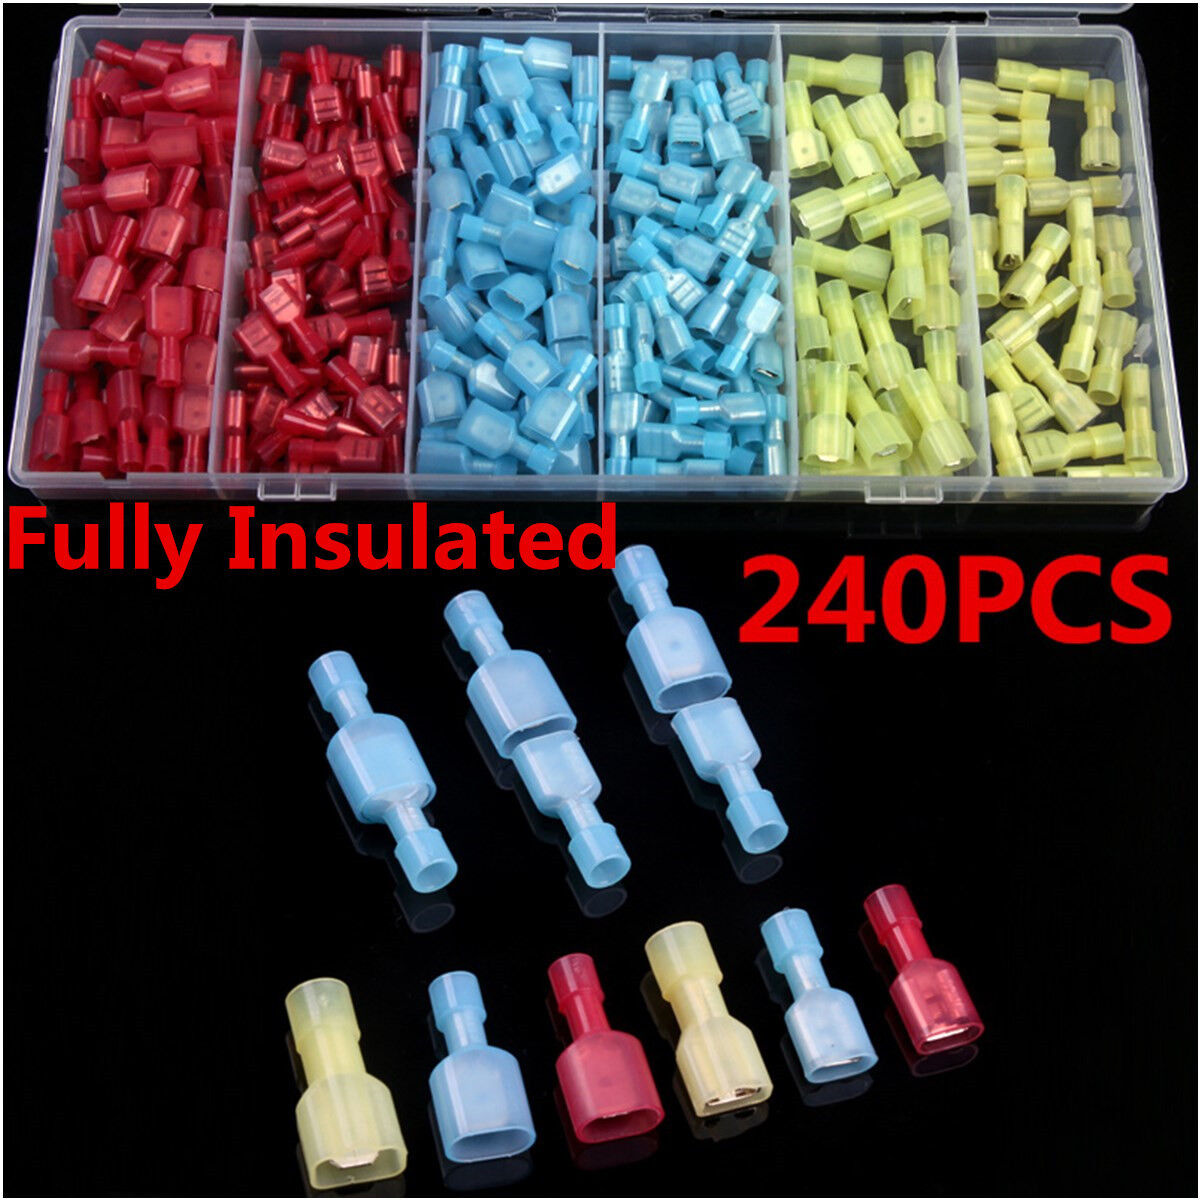 240pc Nylon Fully Insulated Electrical Crimp Wire Connectors Terminals Spade Kit